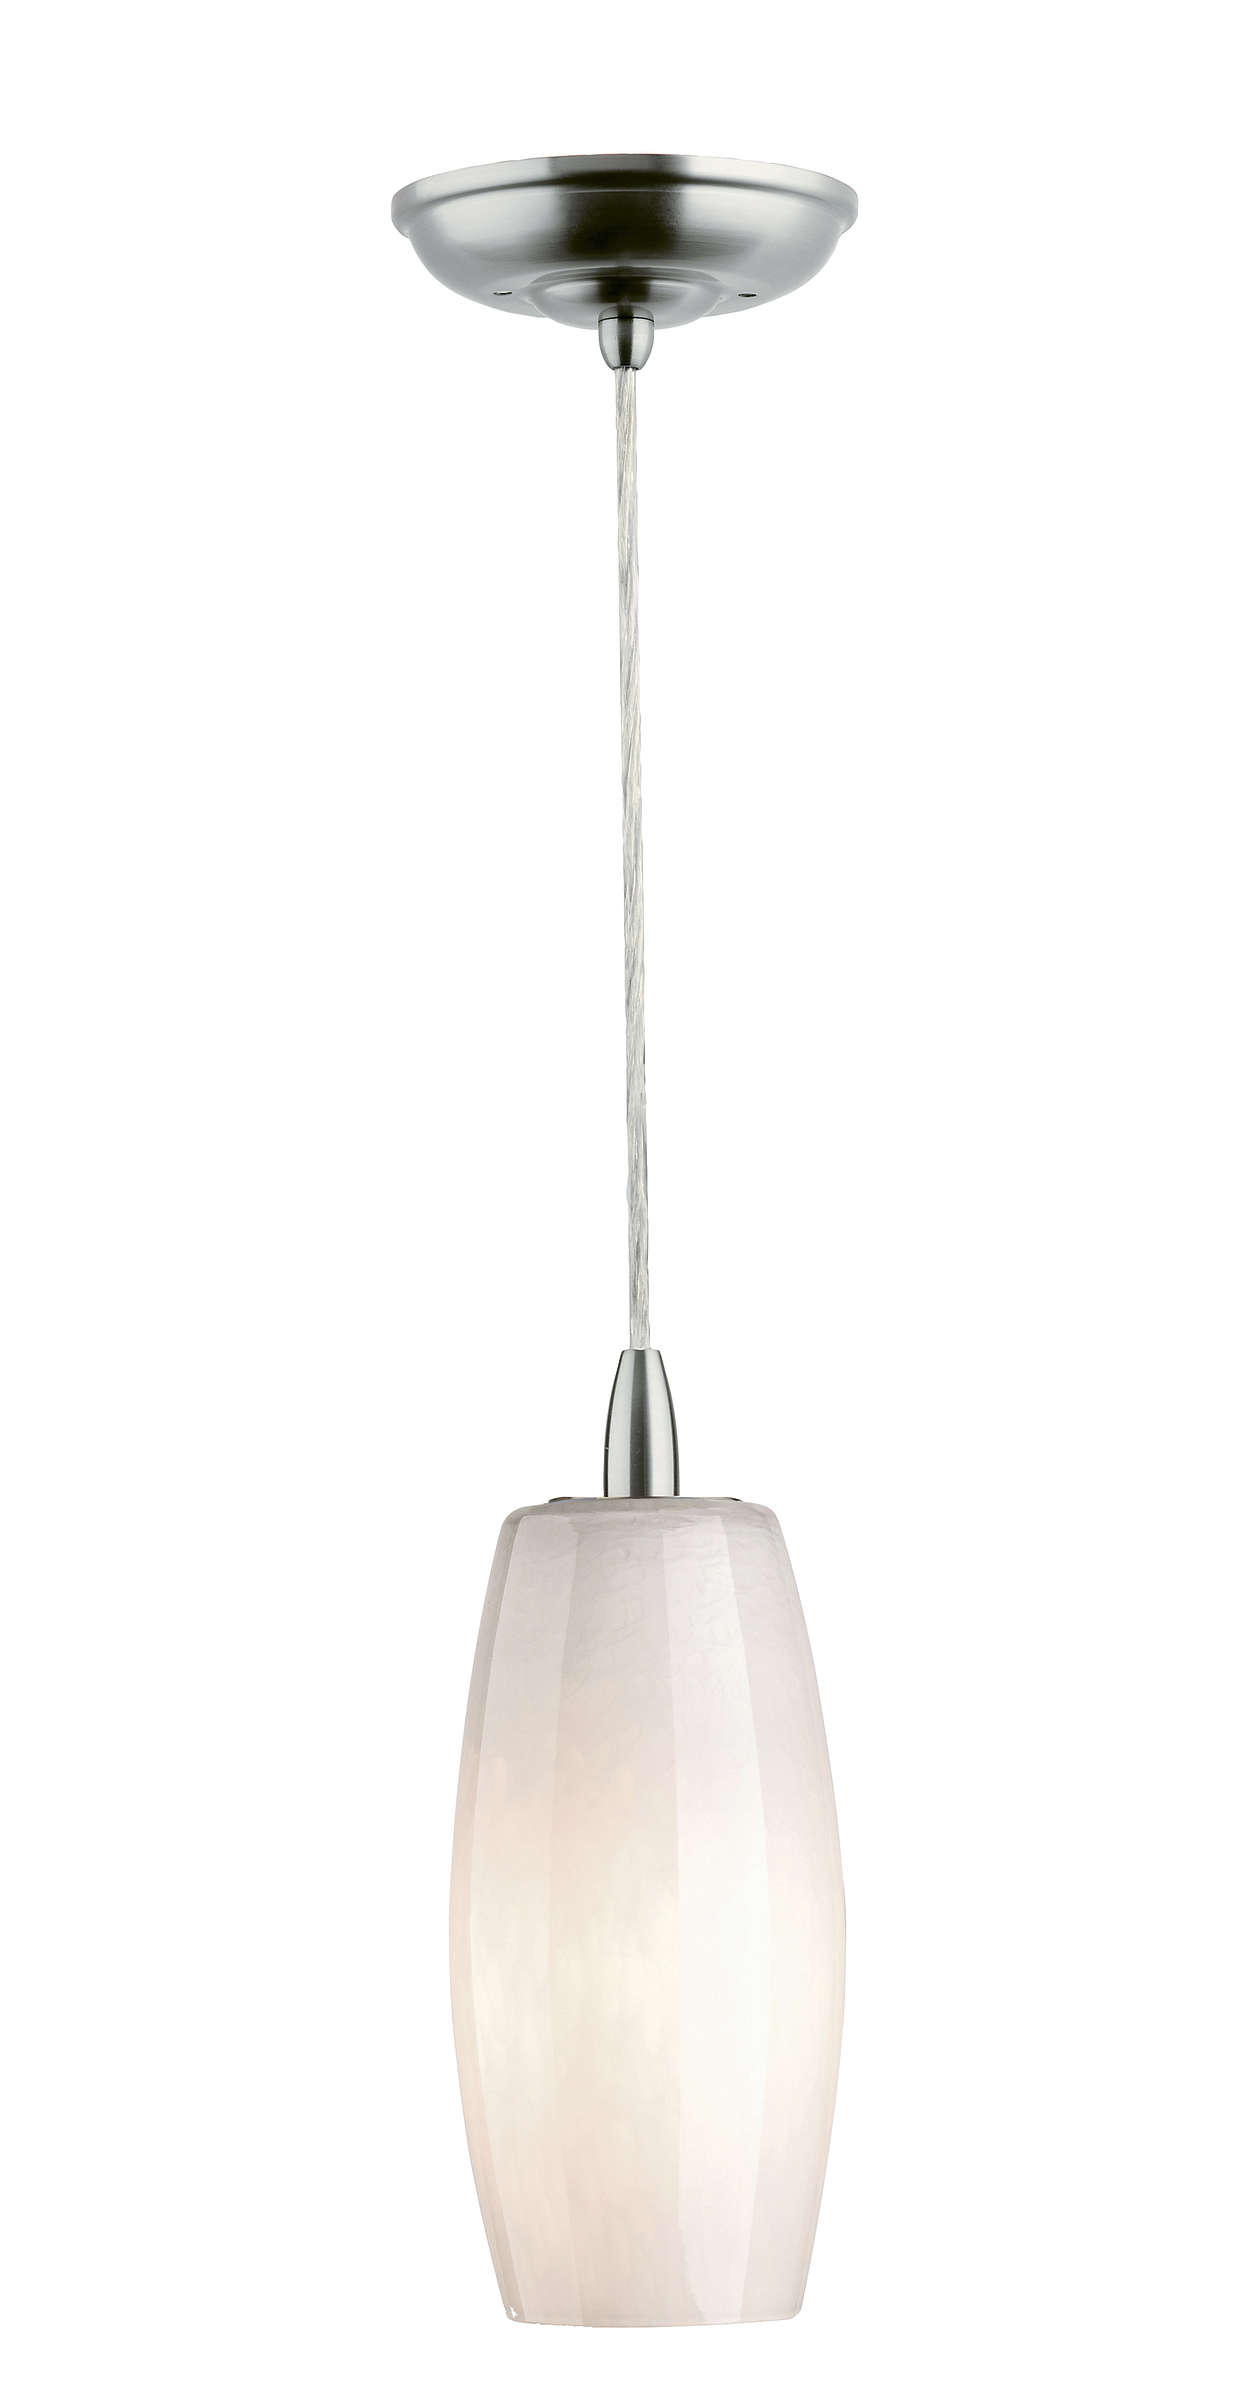 Wishes 1-light pendant in Satin Nickel finish